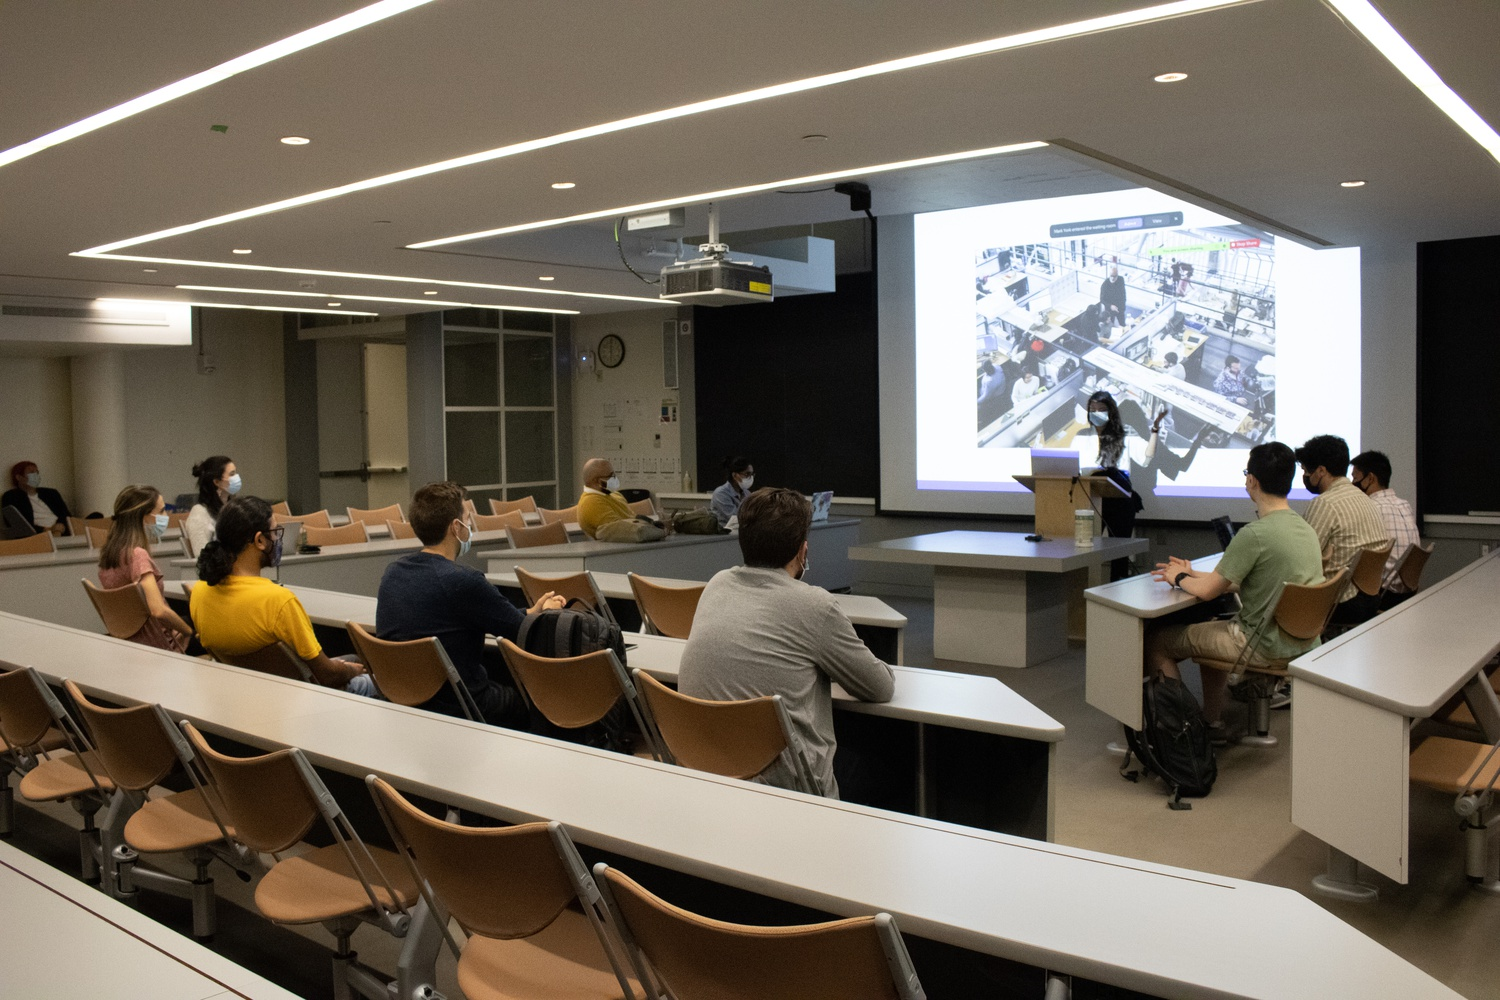 The Harvard Graduate Council held its first public meeting of the academic year Monday to outline its priorities for the upcoming semester.